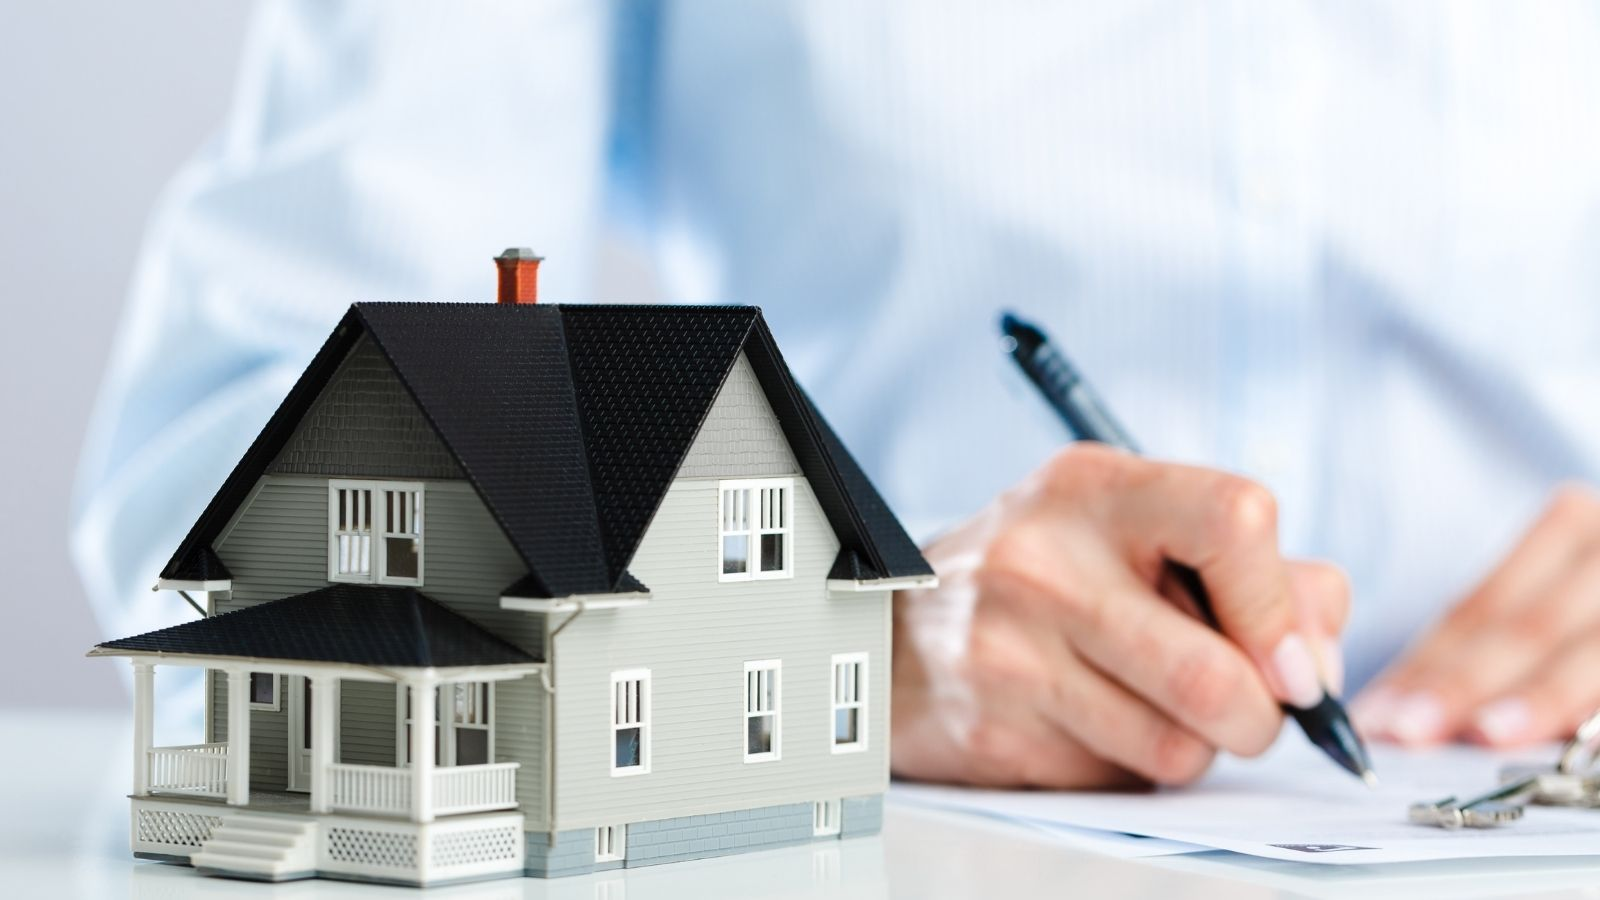 6 Steps on Buying a Home